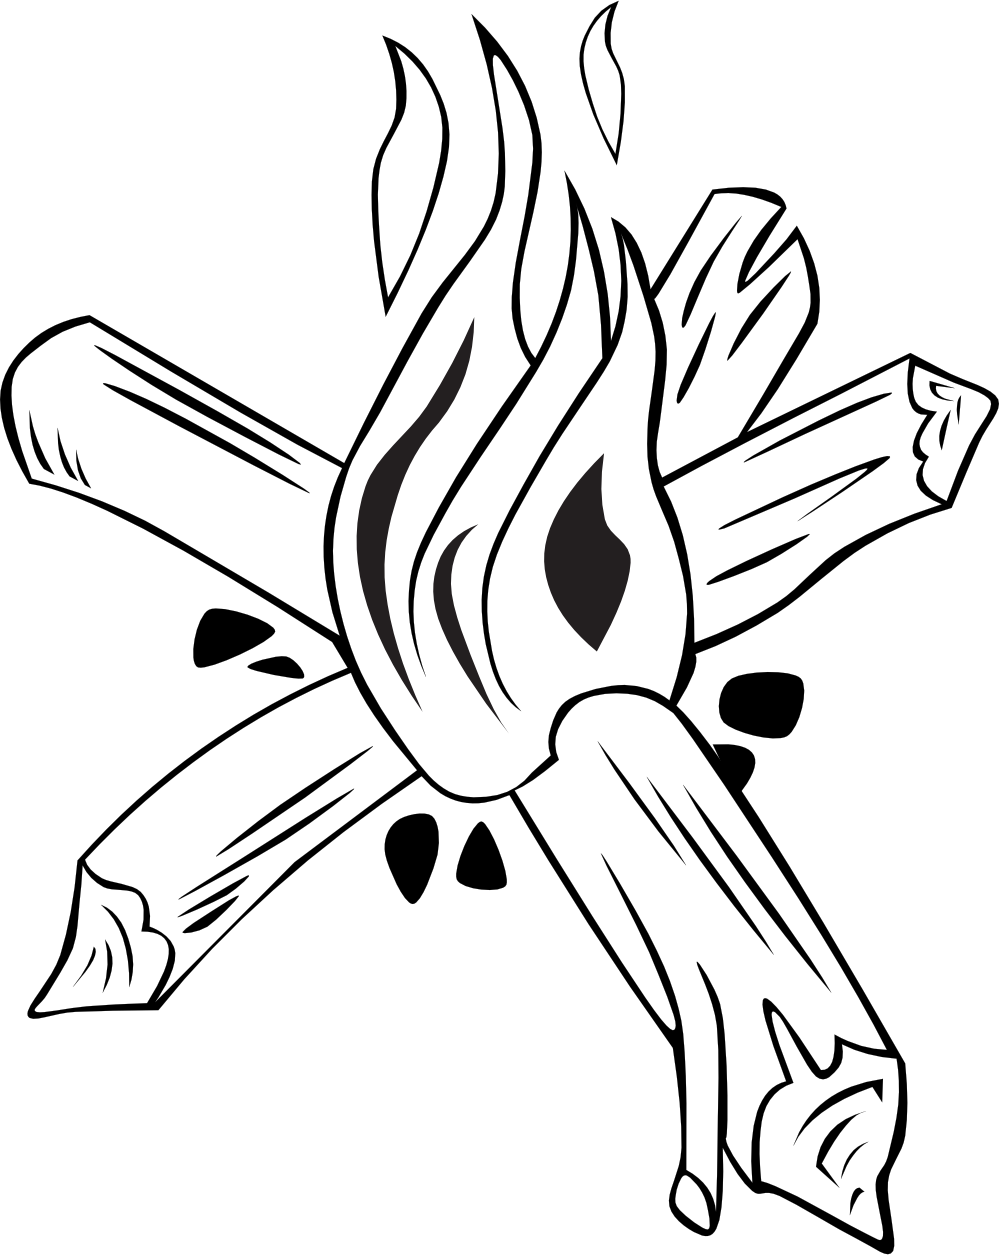 Campfire Clipart Black And White Campfire Clipart Black And White Hd